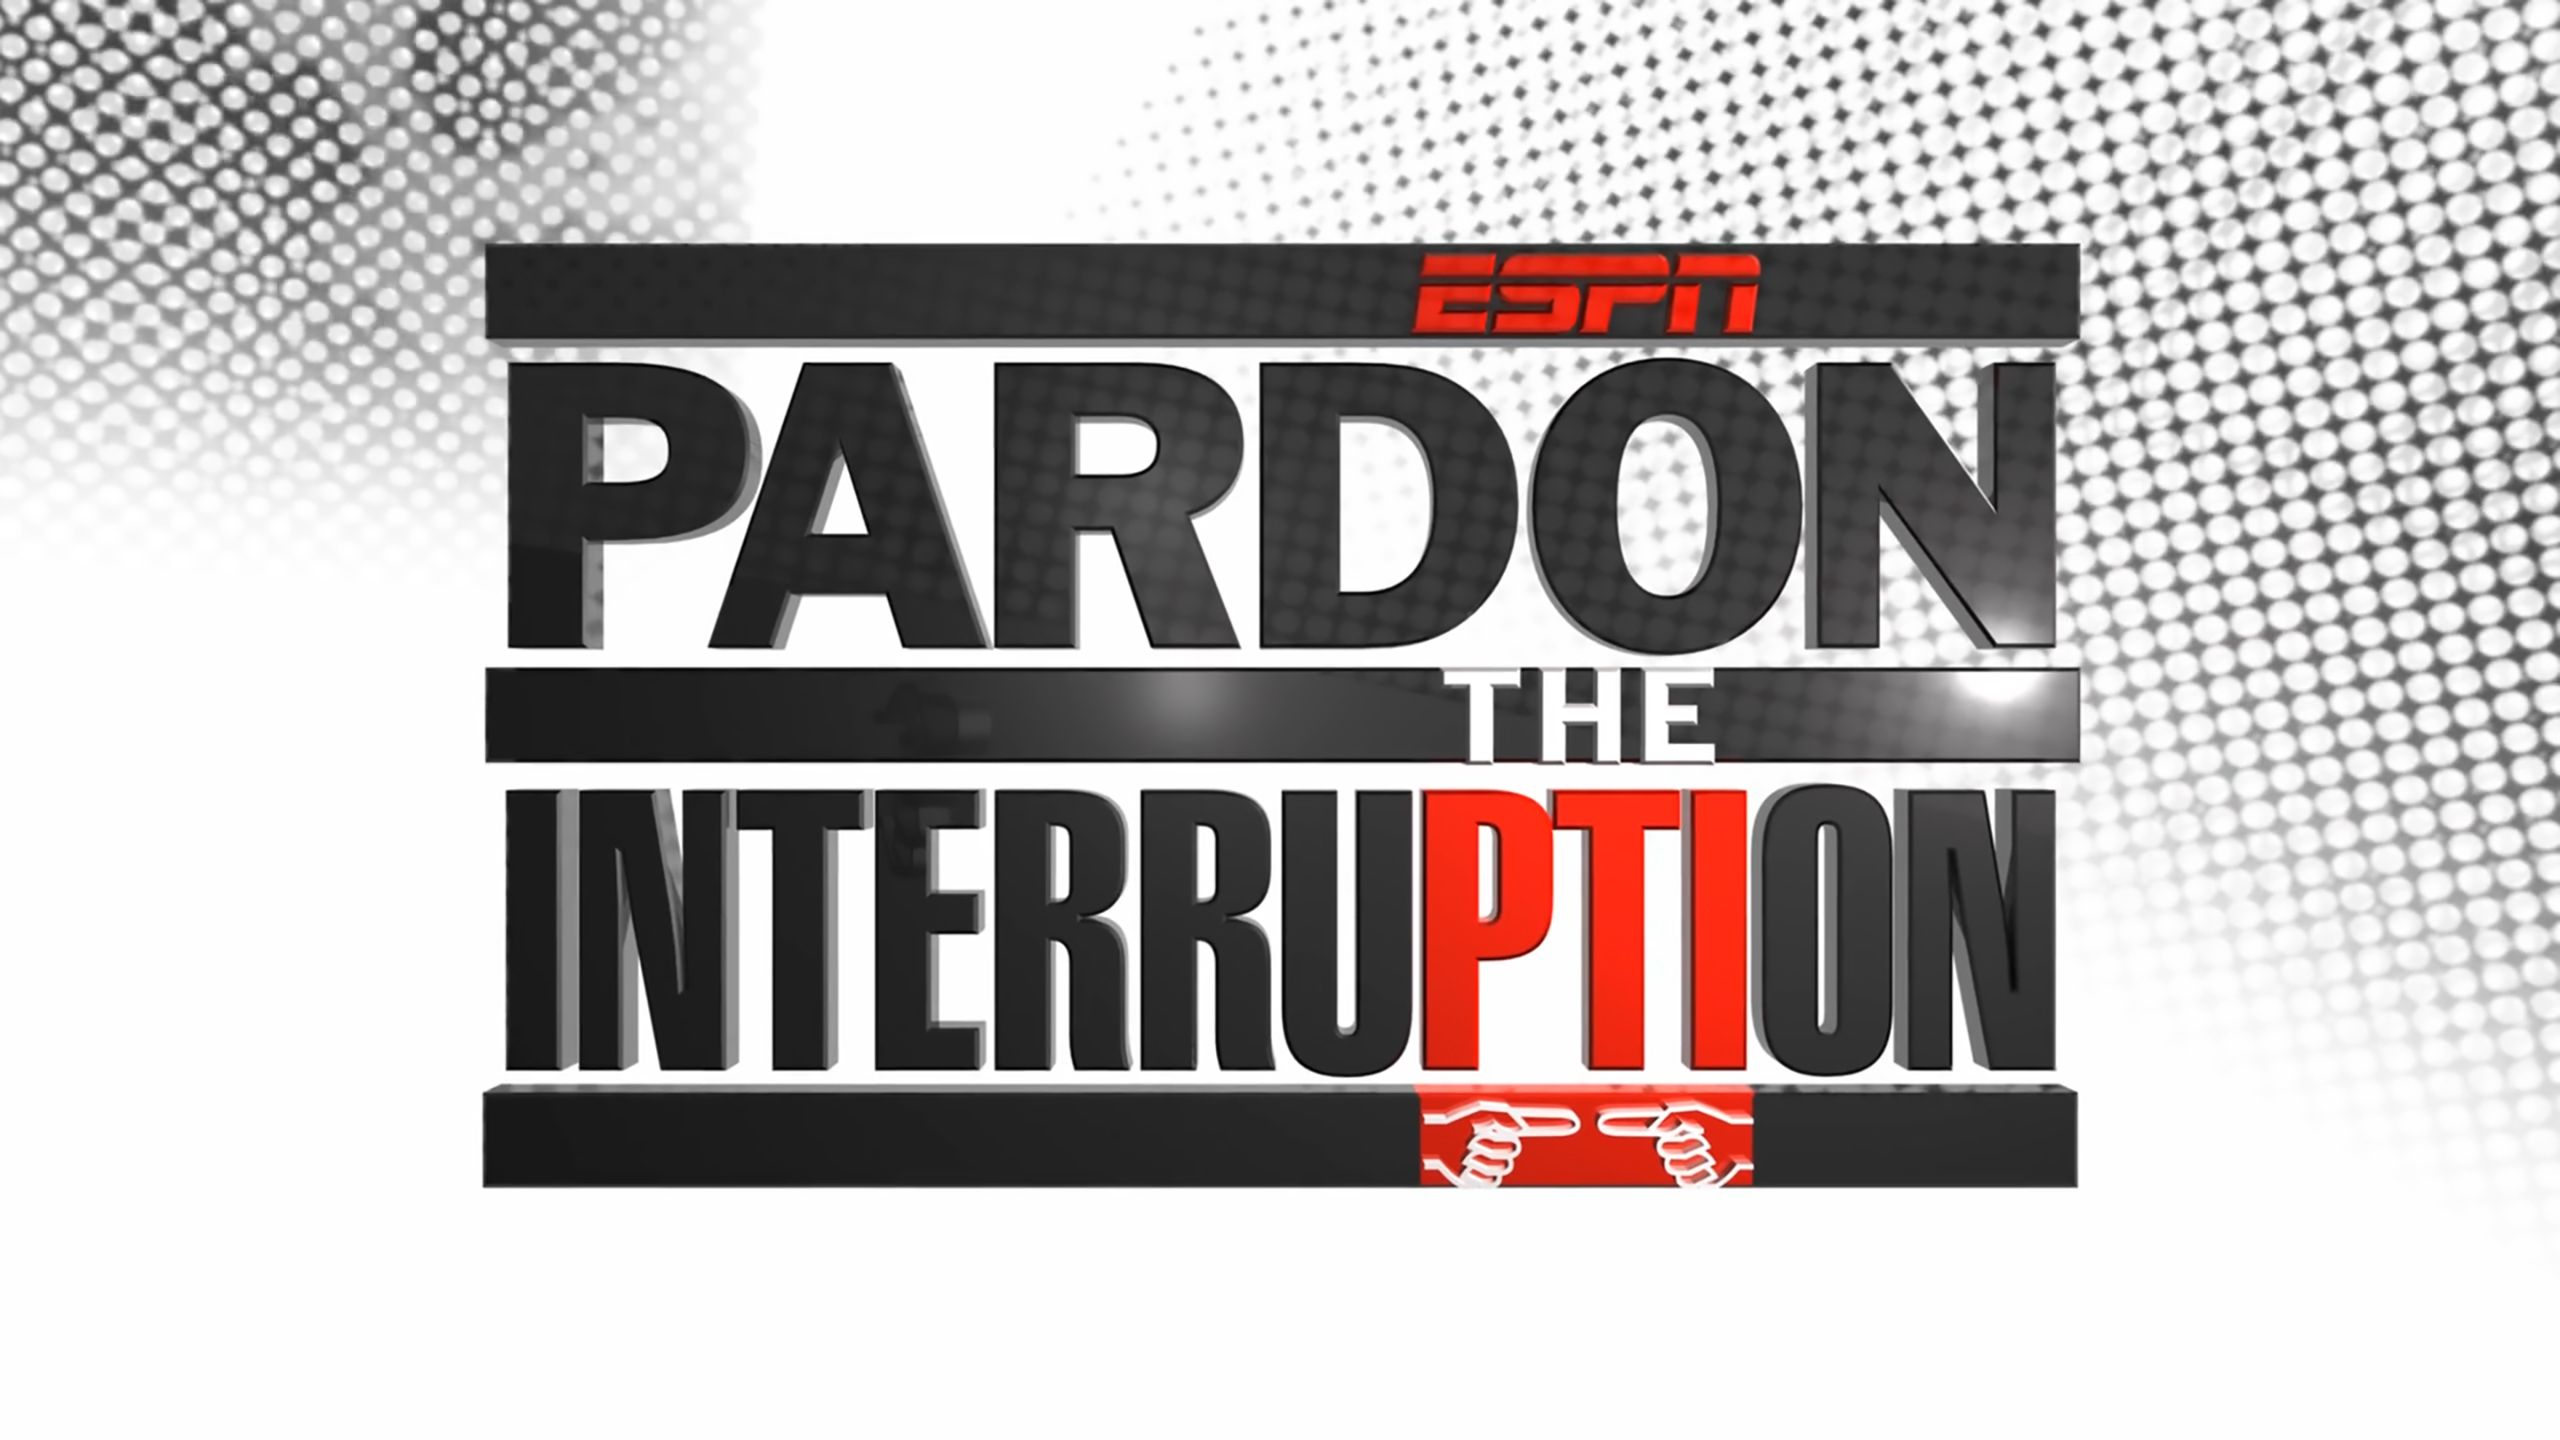 Fri, 12/8 - Pardon The Interruption